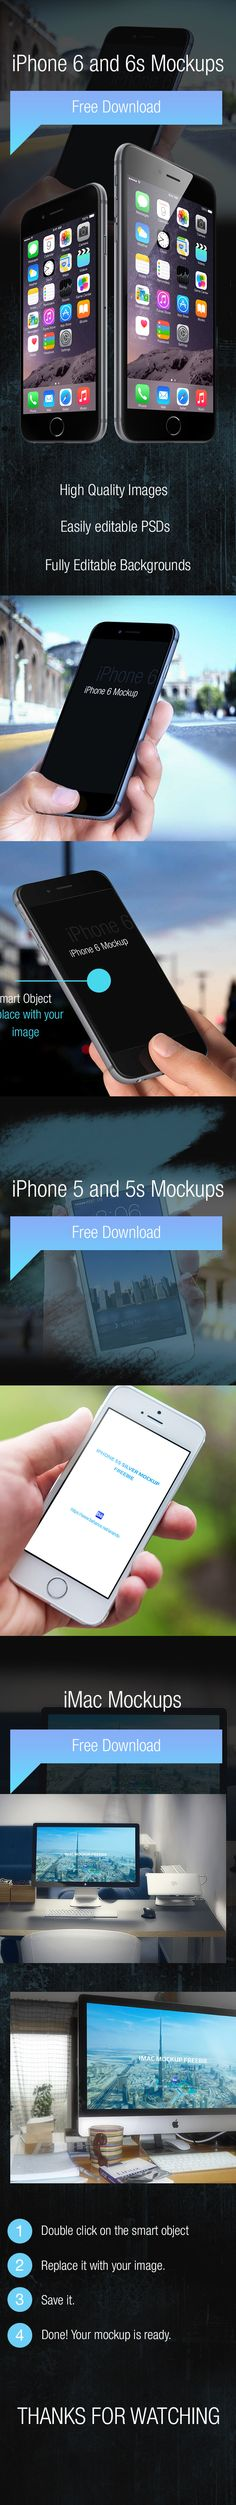 Free iPhone 6 mockup PSDs and much much more for free. on Behance